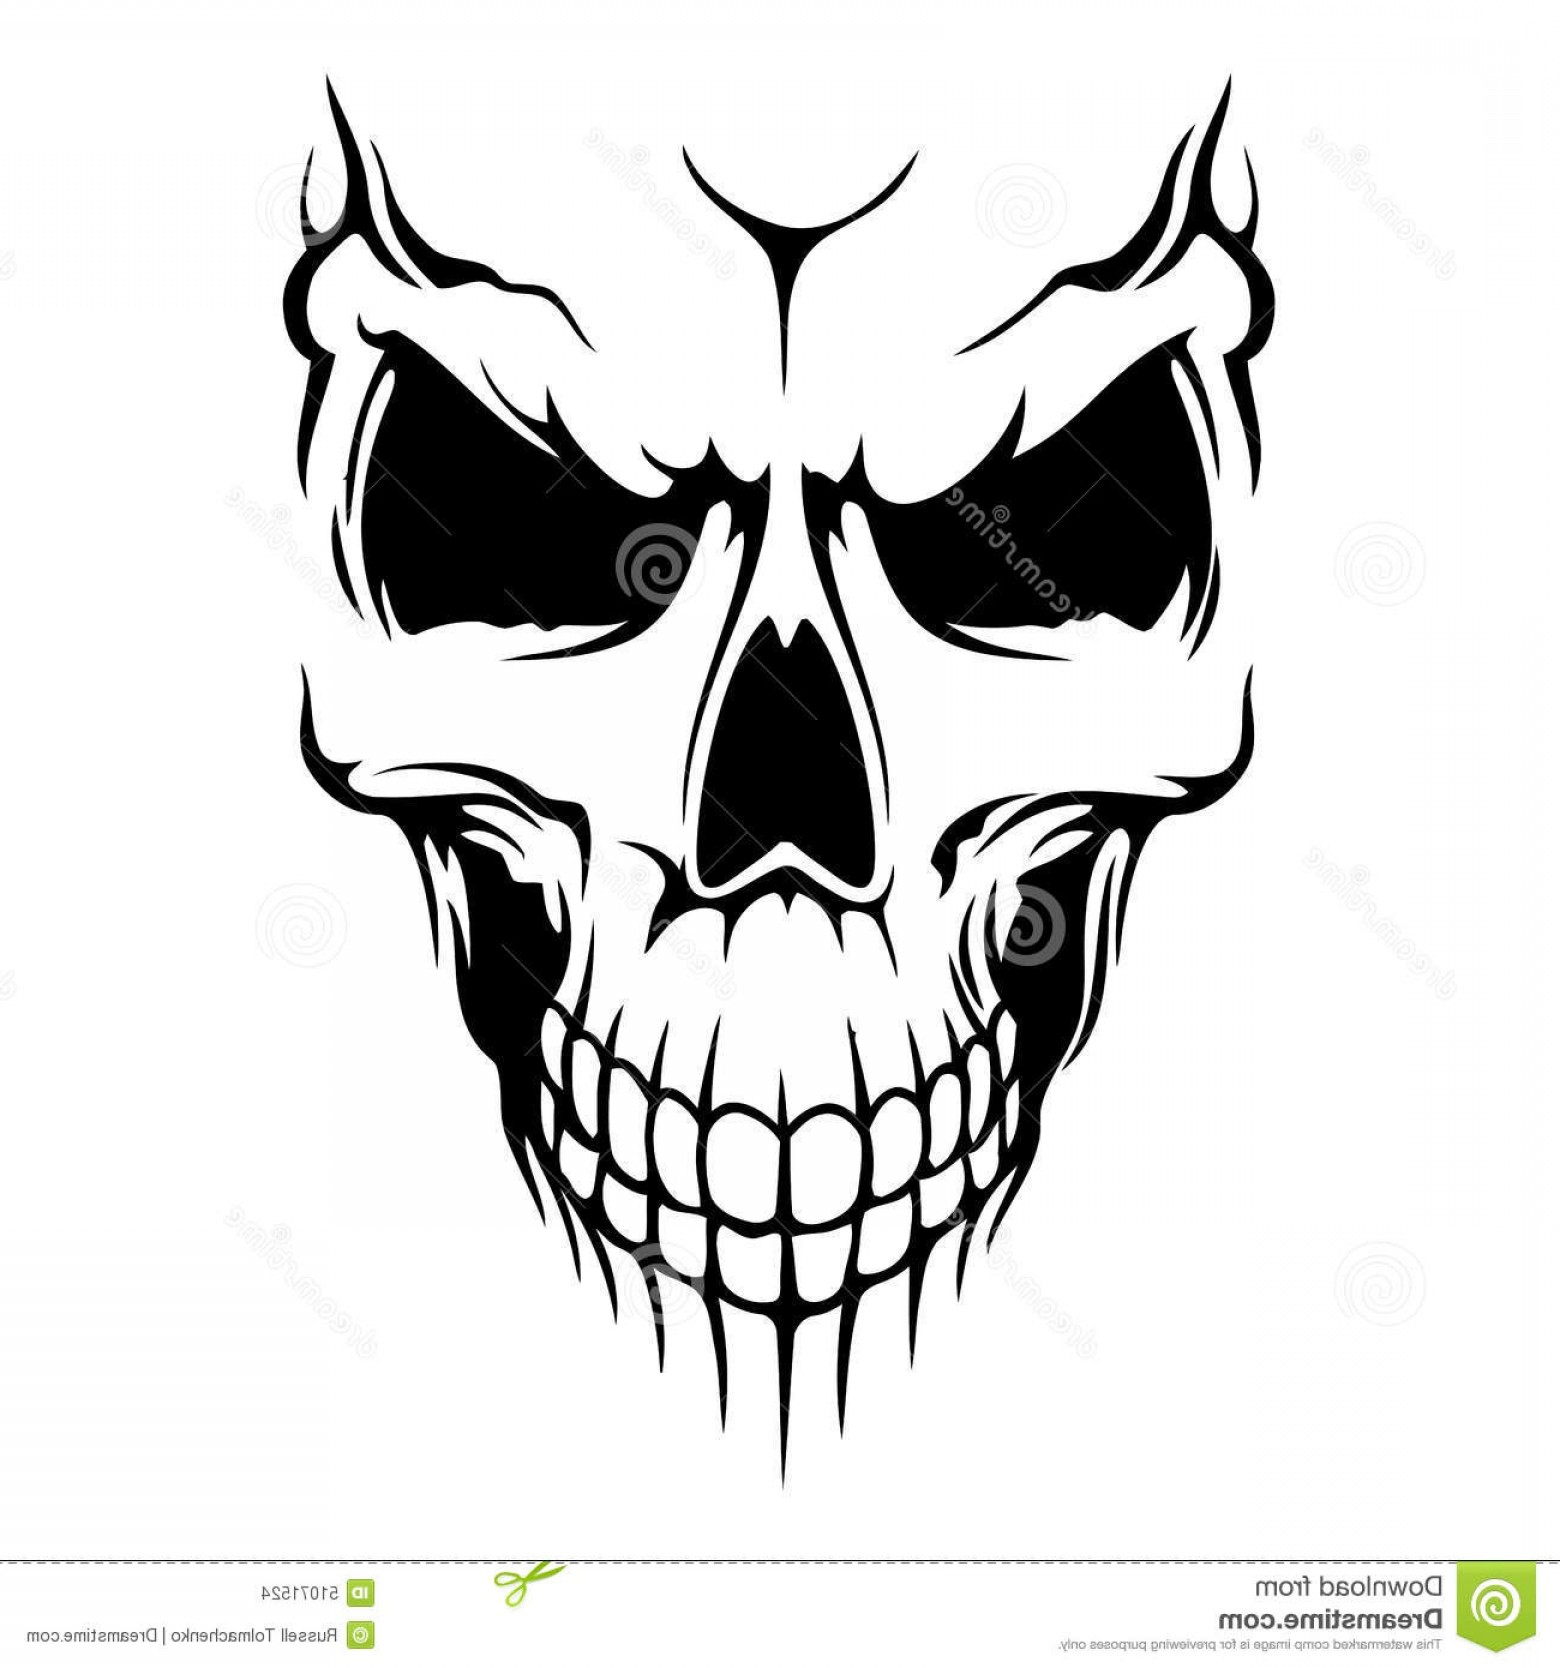 Cool Skull Vector: Stock Illustration Skull Vector Poster Eps Format Image